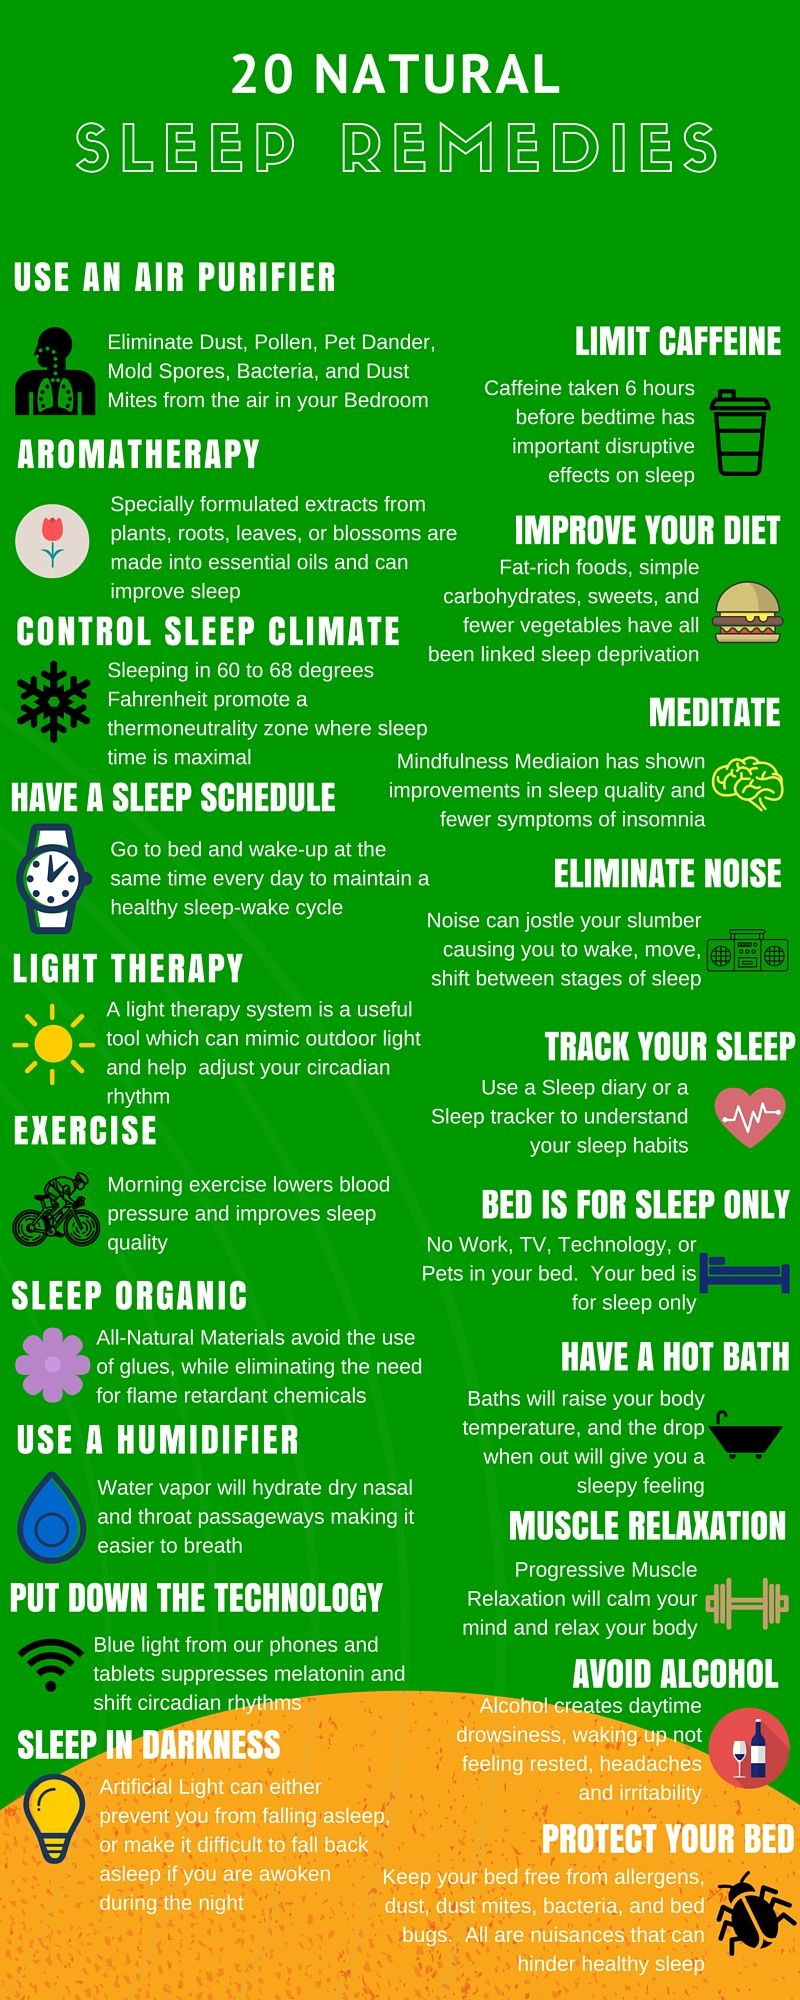 Get More Effective Sleep Without Medication